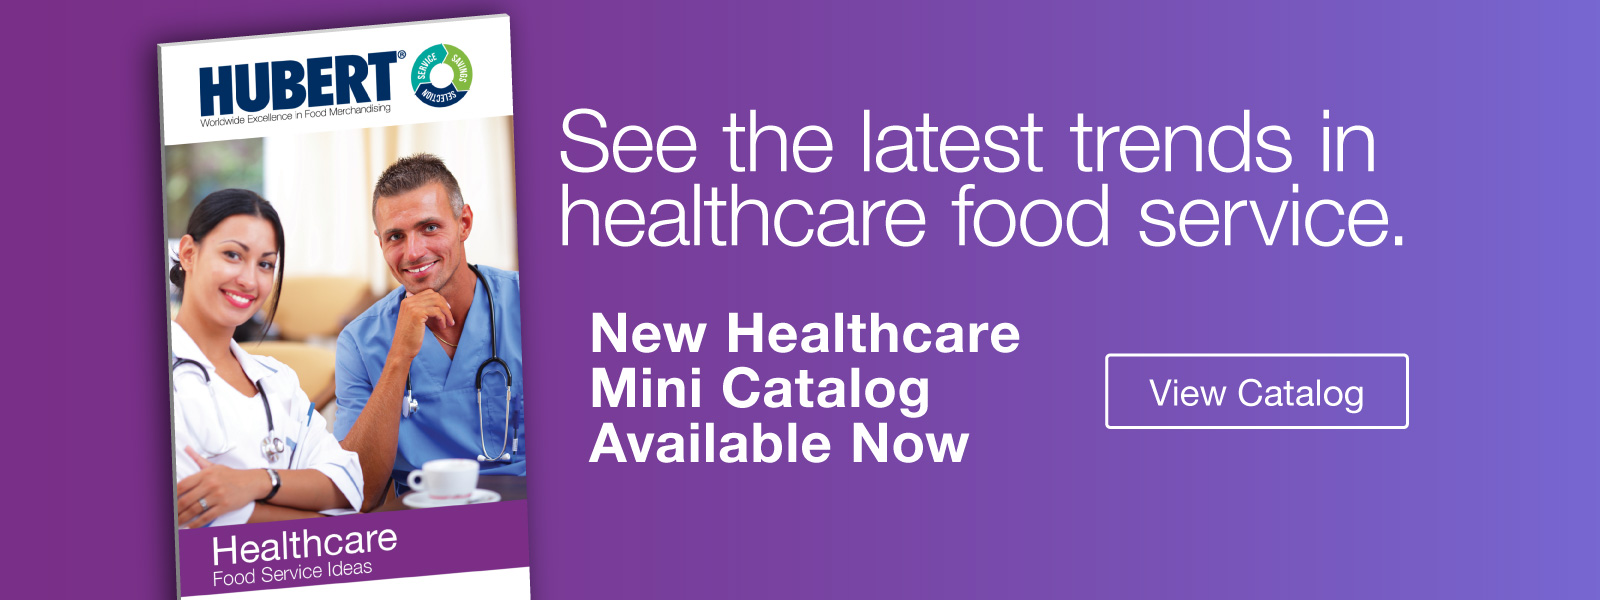 Healthcare Mini Catalog